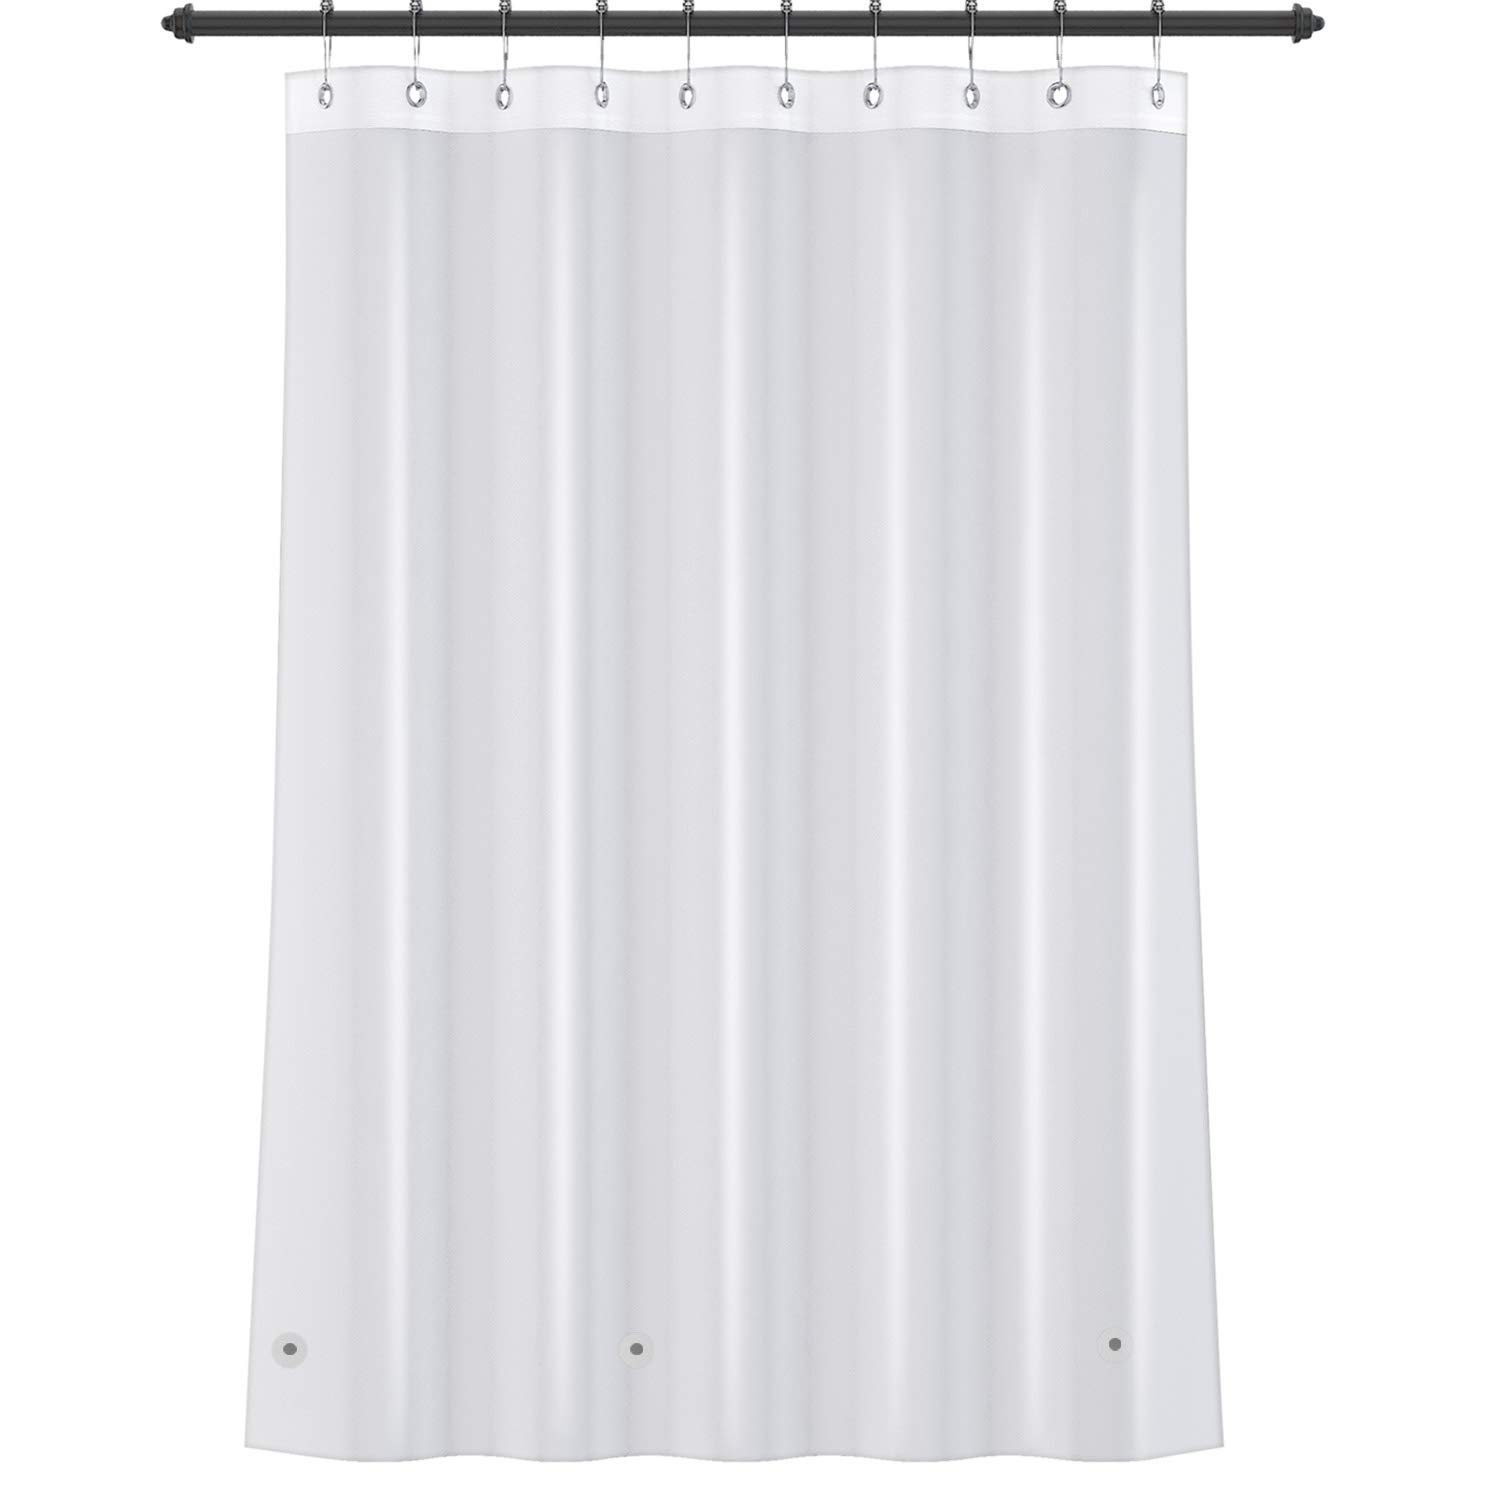 YINENN Shower Curtain Liner Heavy Duty PEVA 8G Mildew and Stain Resistant,Anti Bacterial,Waterproof,Nontoxic, No Chemical Smell-Rust Proof Metal Grommets-72x72 inch with 12 Metal Hooks (Clear)